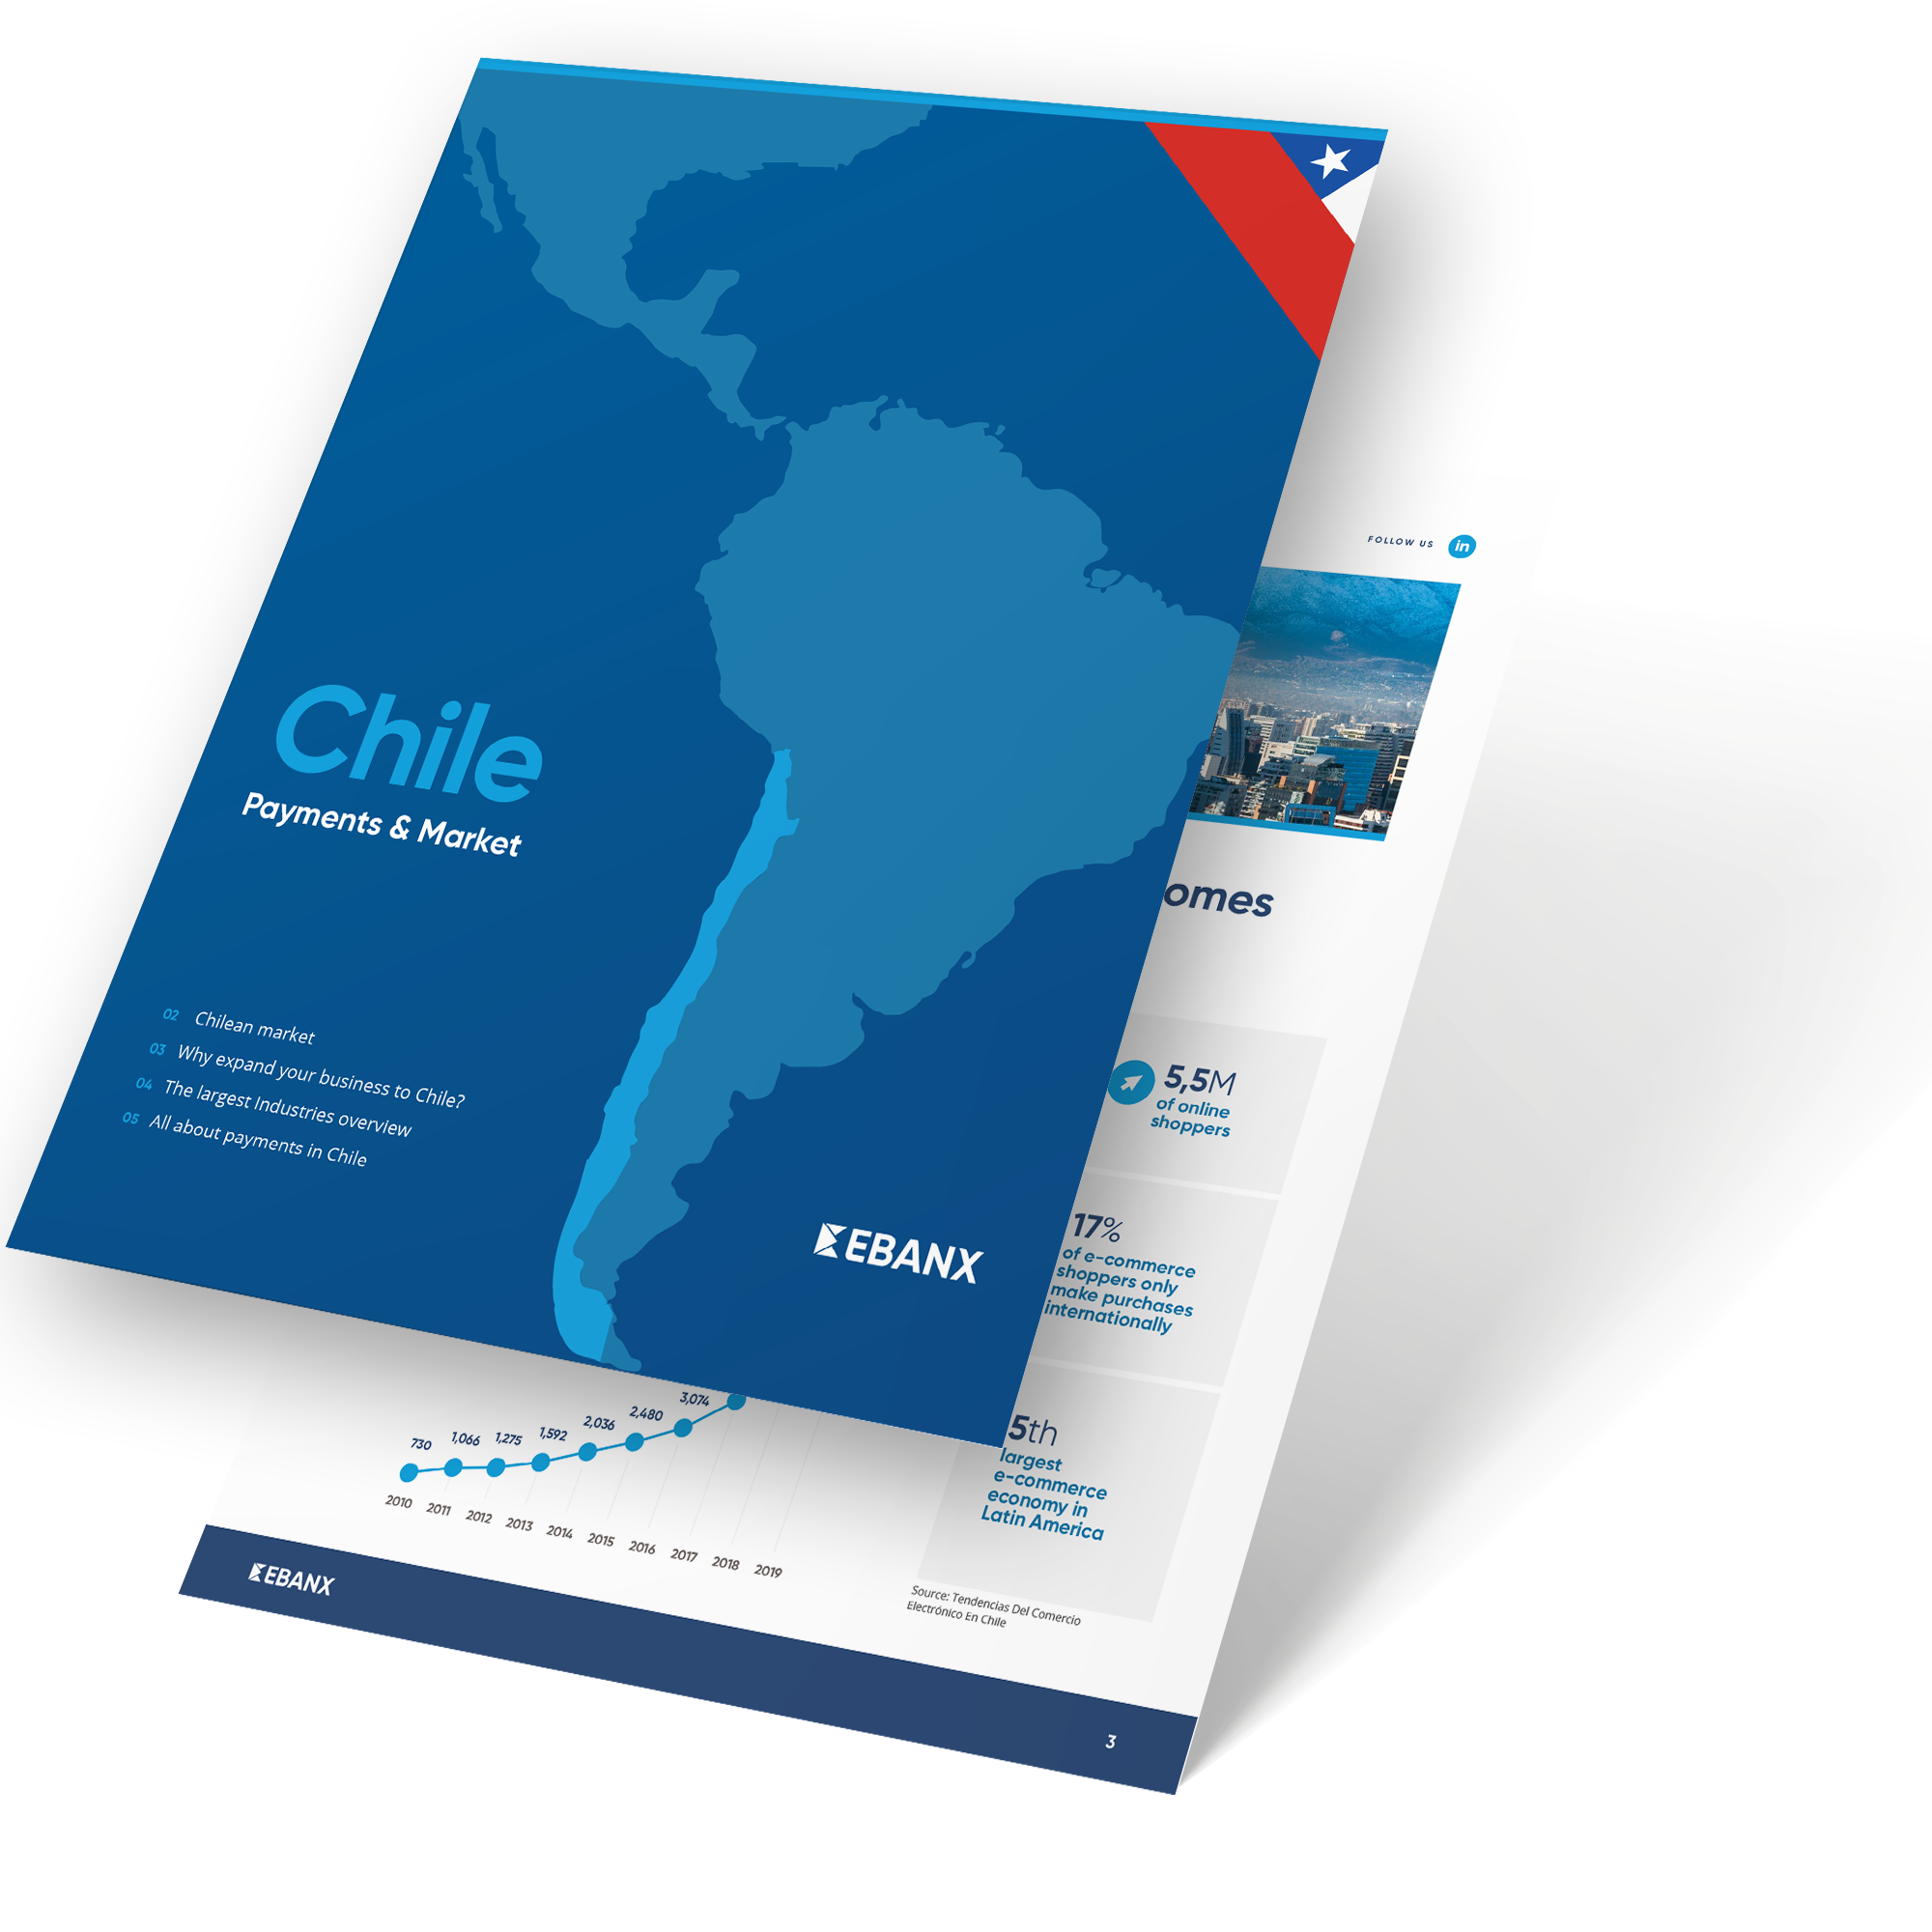 Chile: Market & Payments whitepaper